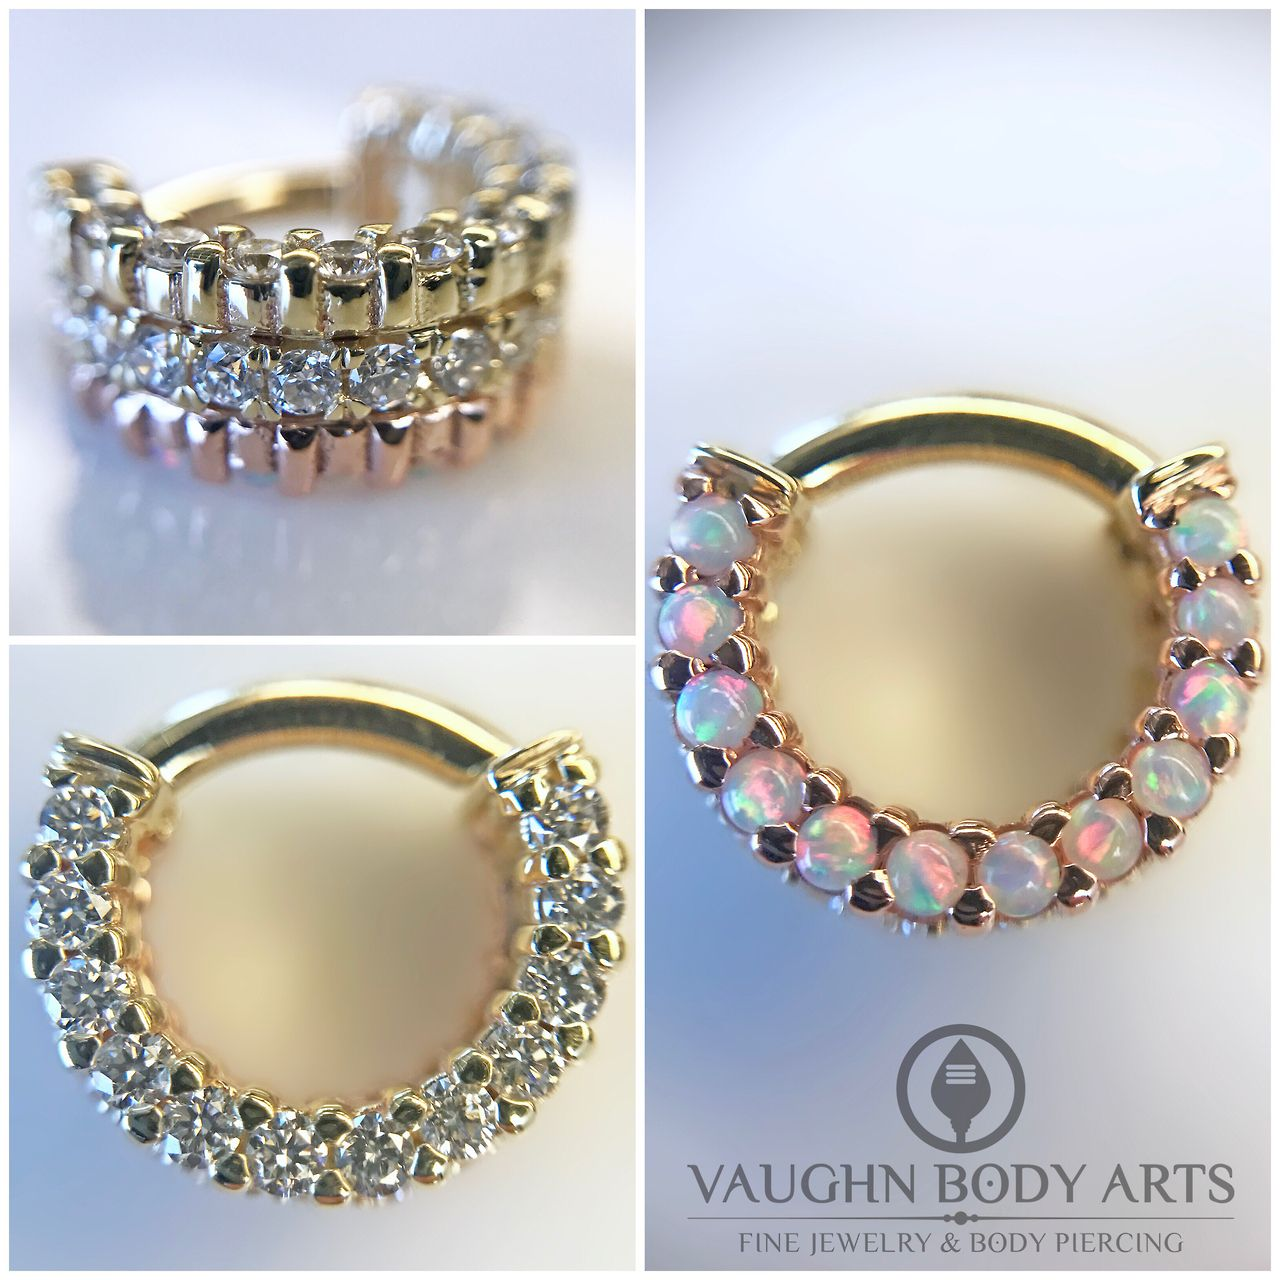 Double nose piercing plus septum  We carry a lot of beautiful body jewelry at Vaughn Body Arts But